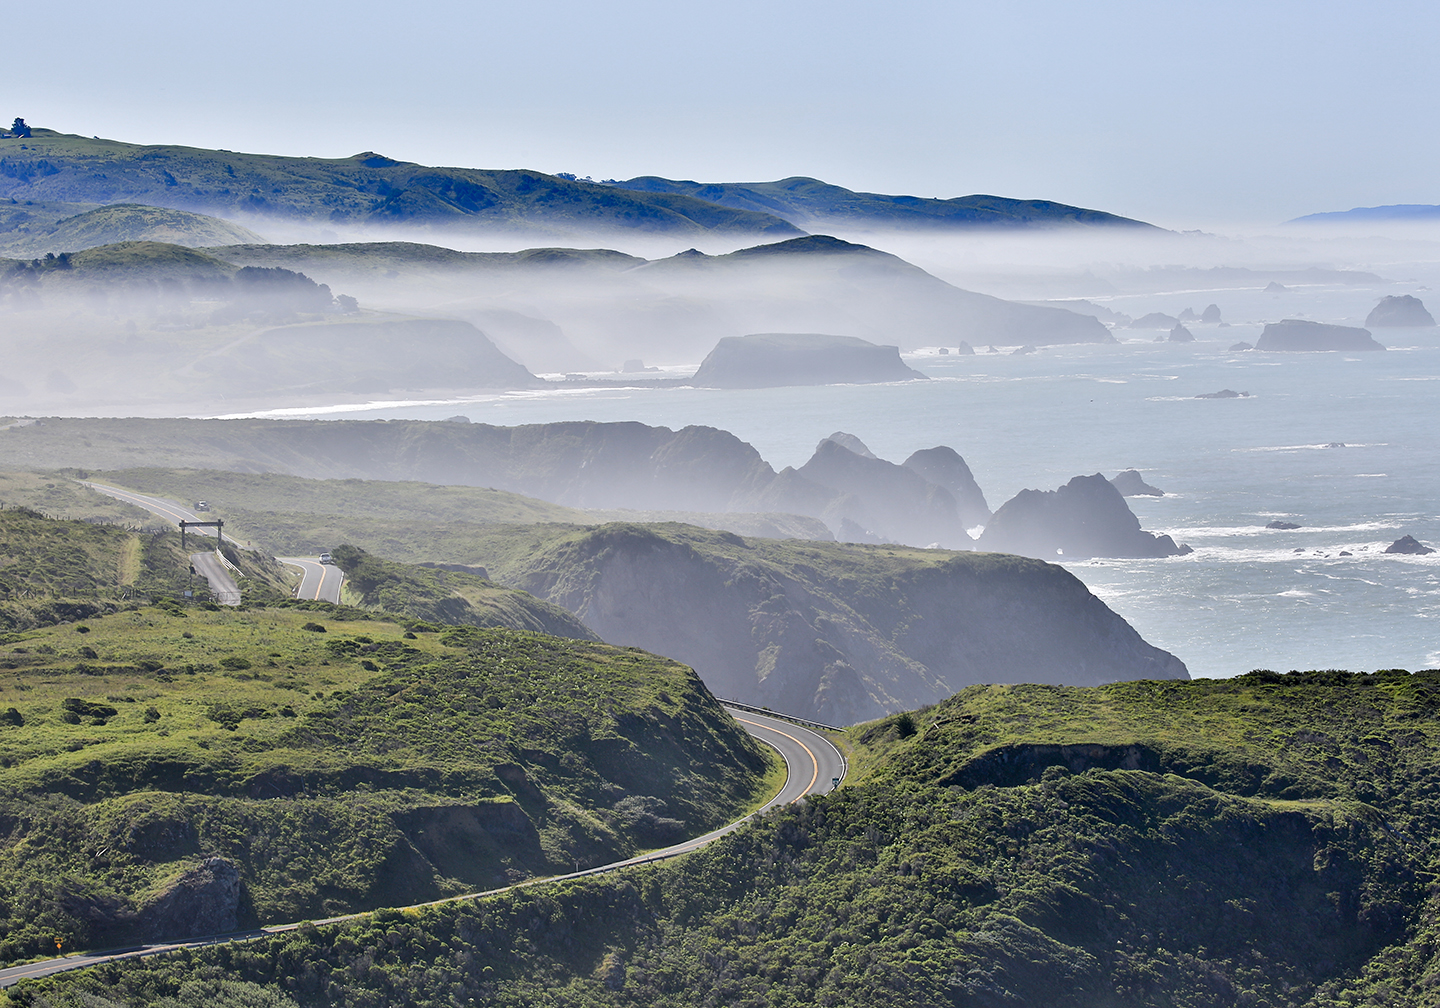 A view along the cliffs in Bodega Bay, CA, with sea on the right and a road in the foreground.